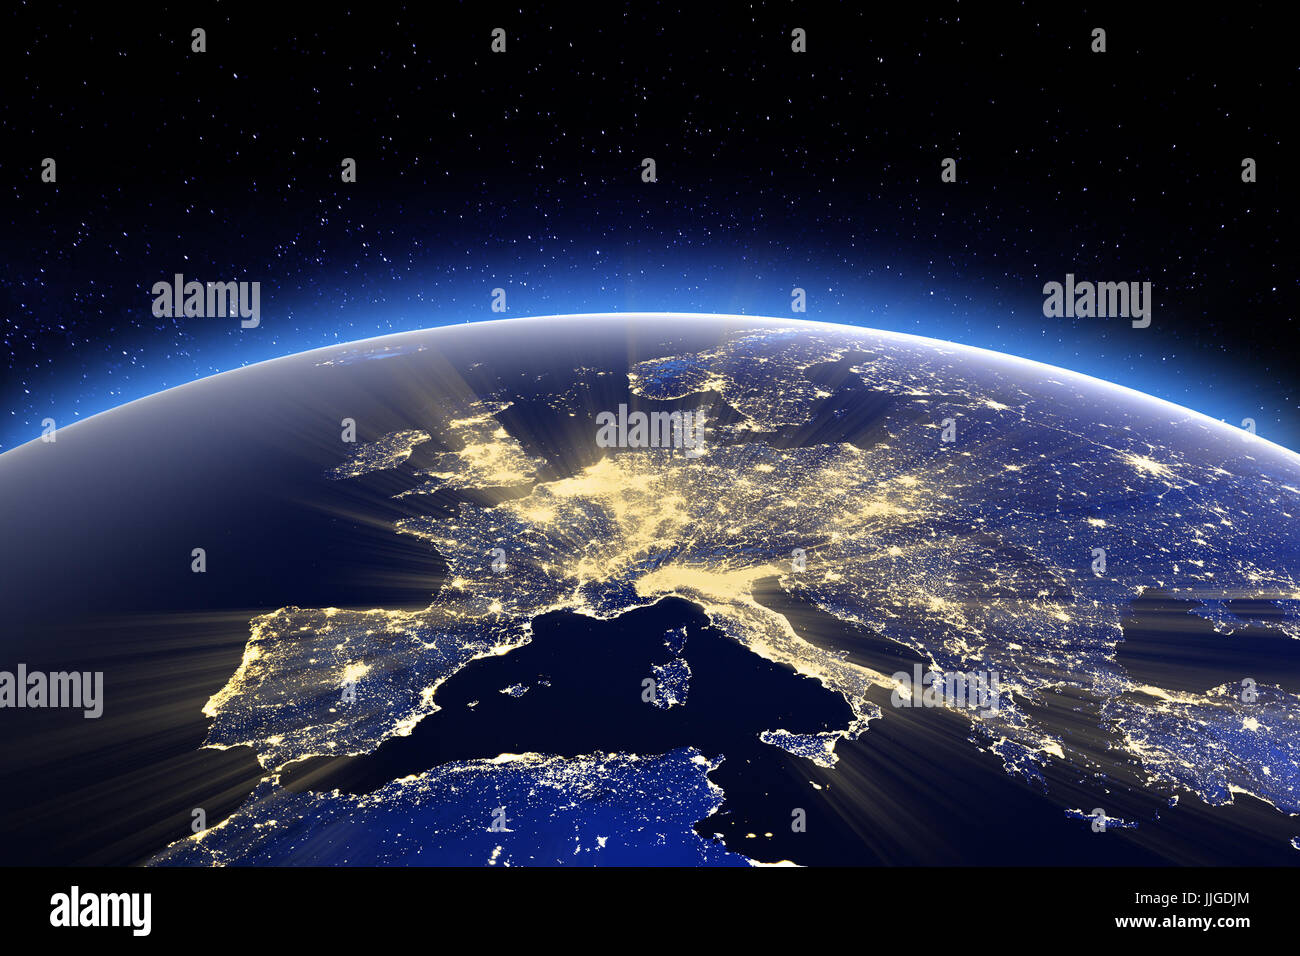 Europe. Elements of this image furnished by NASA - Stock Image